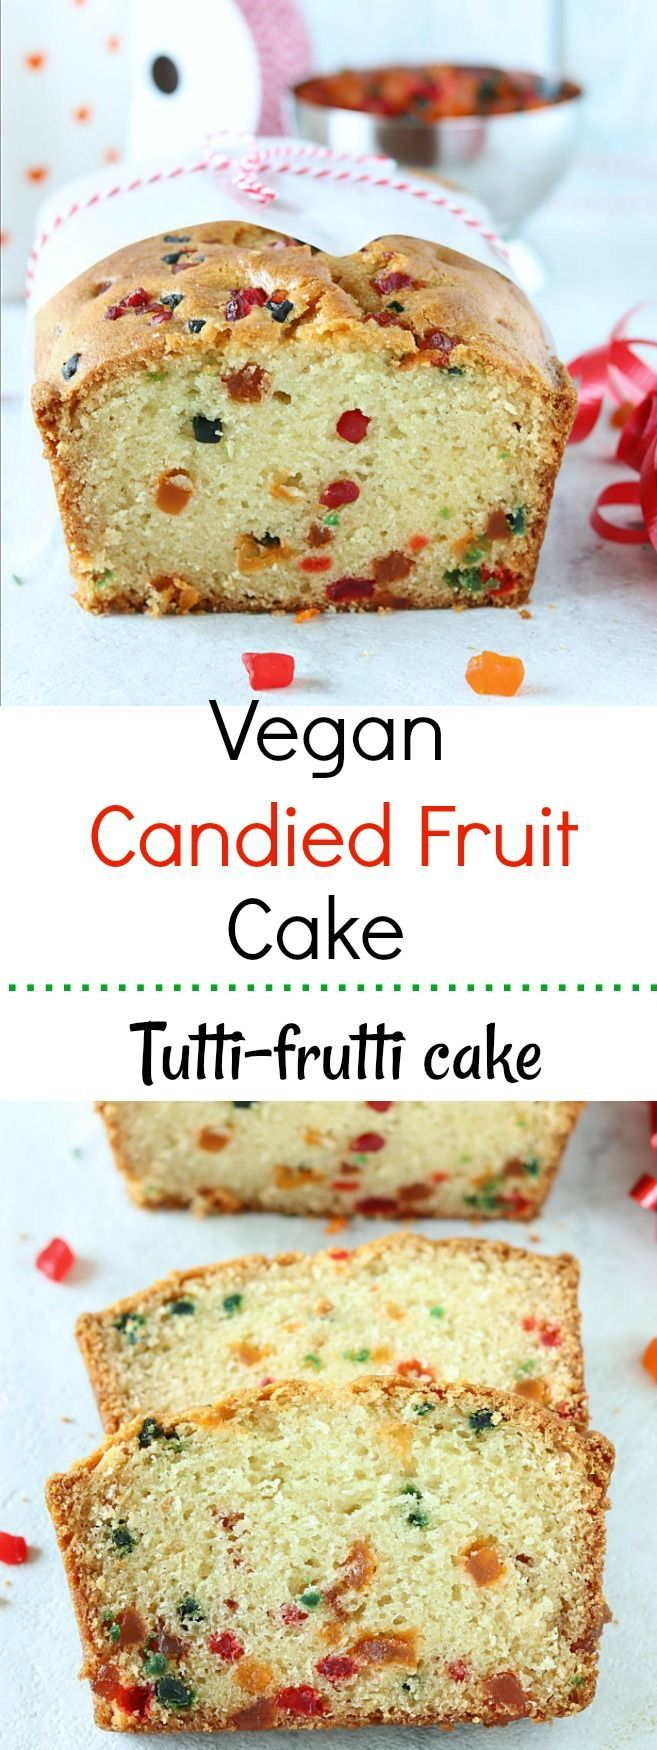 This Vegan Tutti Frutti Cake is insanely good, incredibly-moist, so amazingand utterly delicious. A vegan version of a classic favorite made with candied fruits – theperfect after school snack !